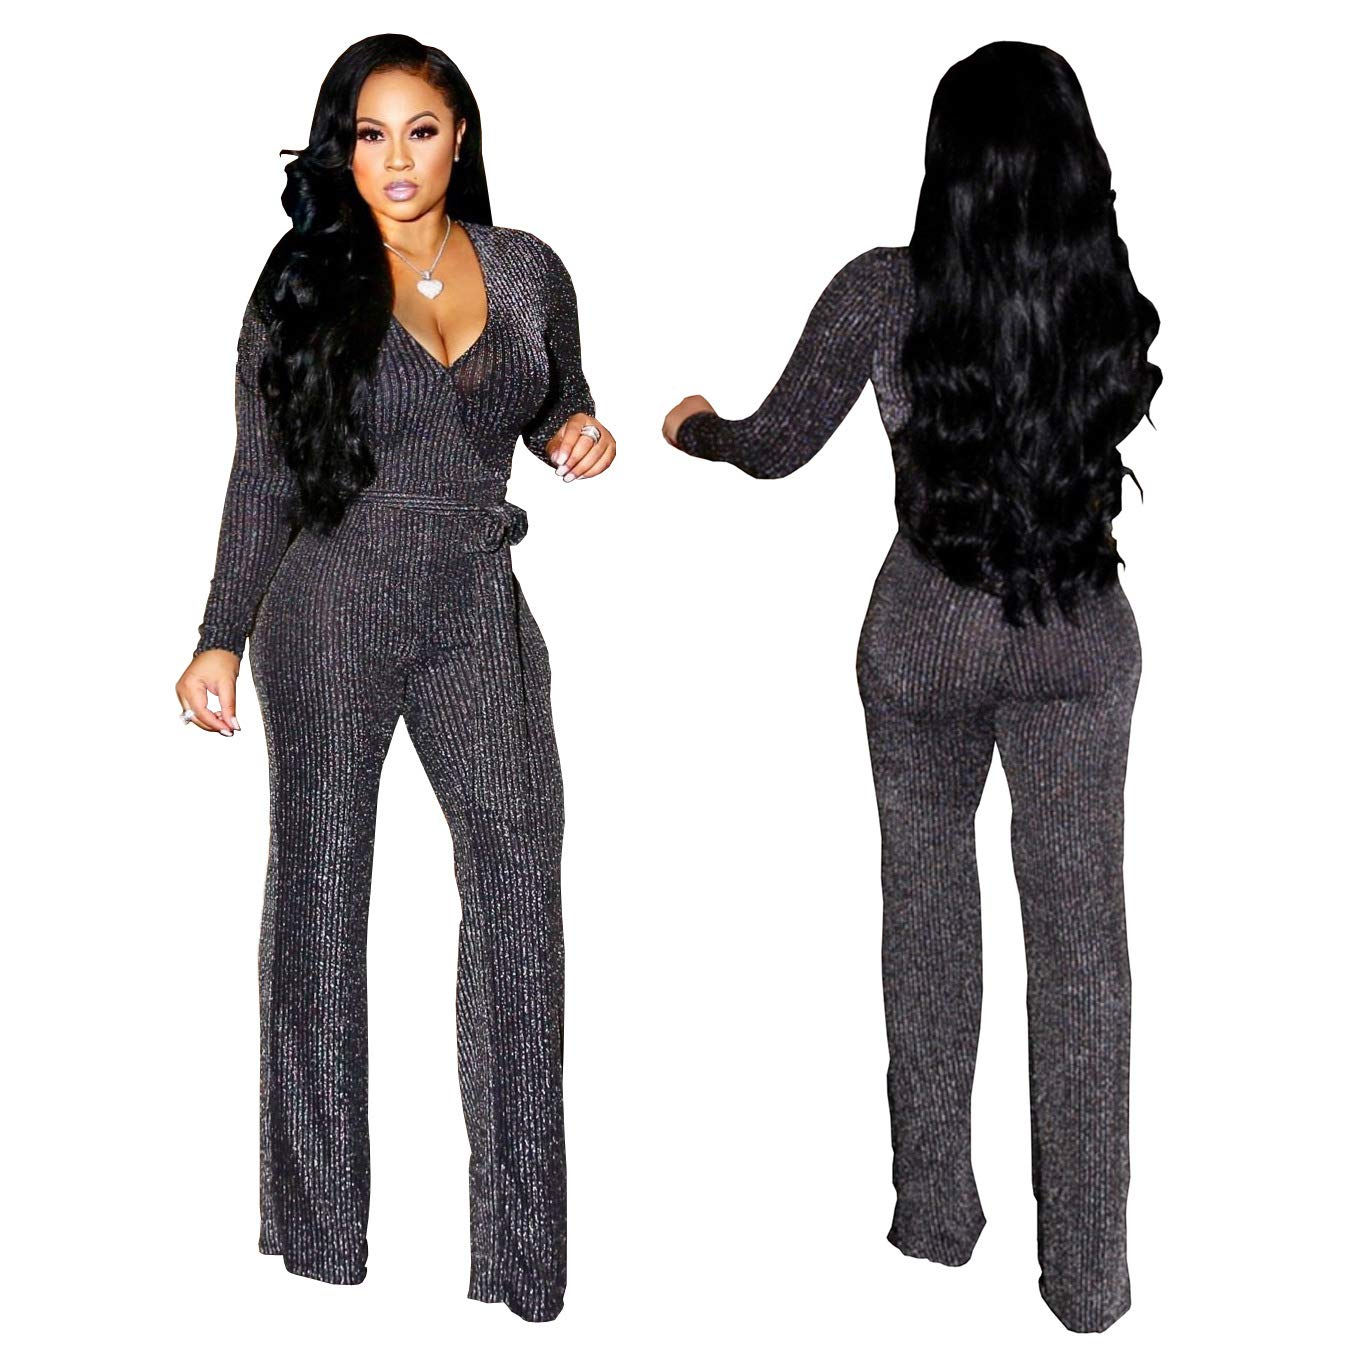 aef0661a72b1 Amazon.com  Sparkly Sexy Jumpsuits for Women Clubwear Long Sleeve Elegant  Party Rompers high Waisted Wide Leg Pants Plus Size  Clothing